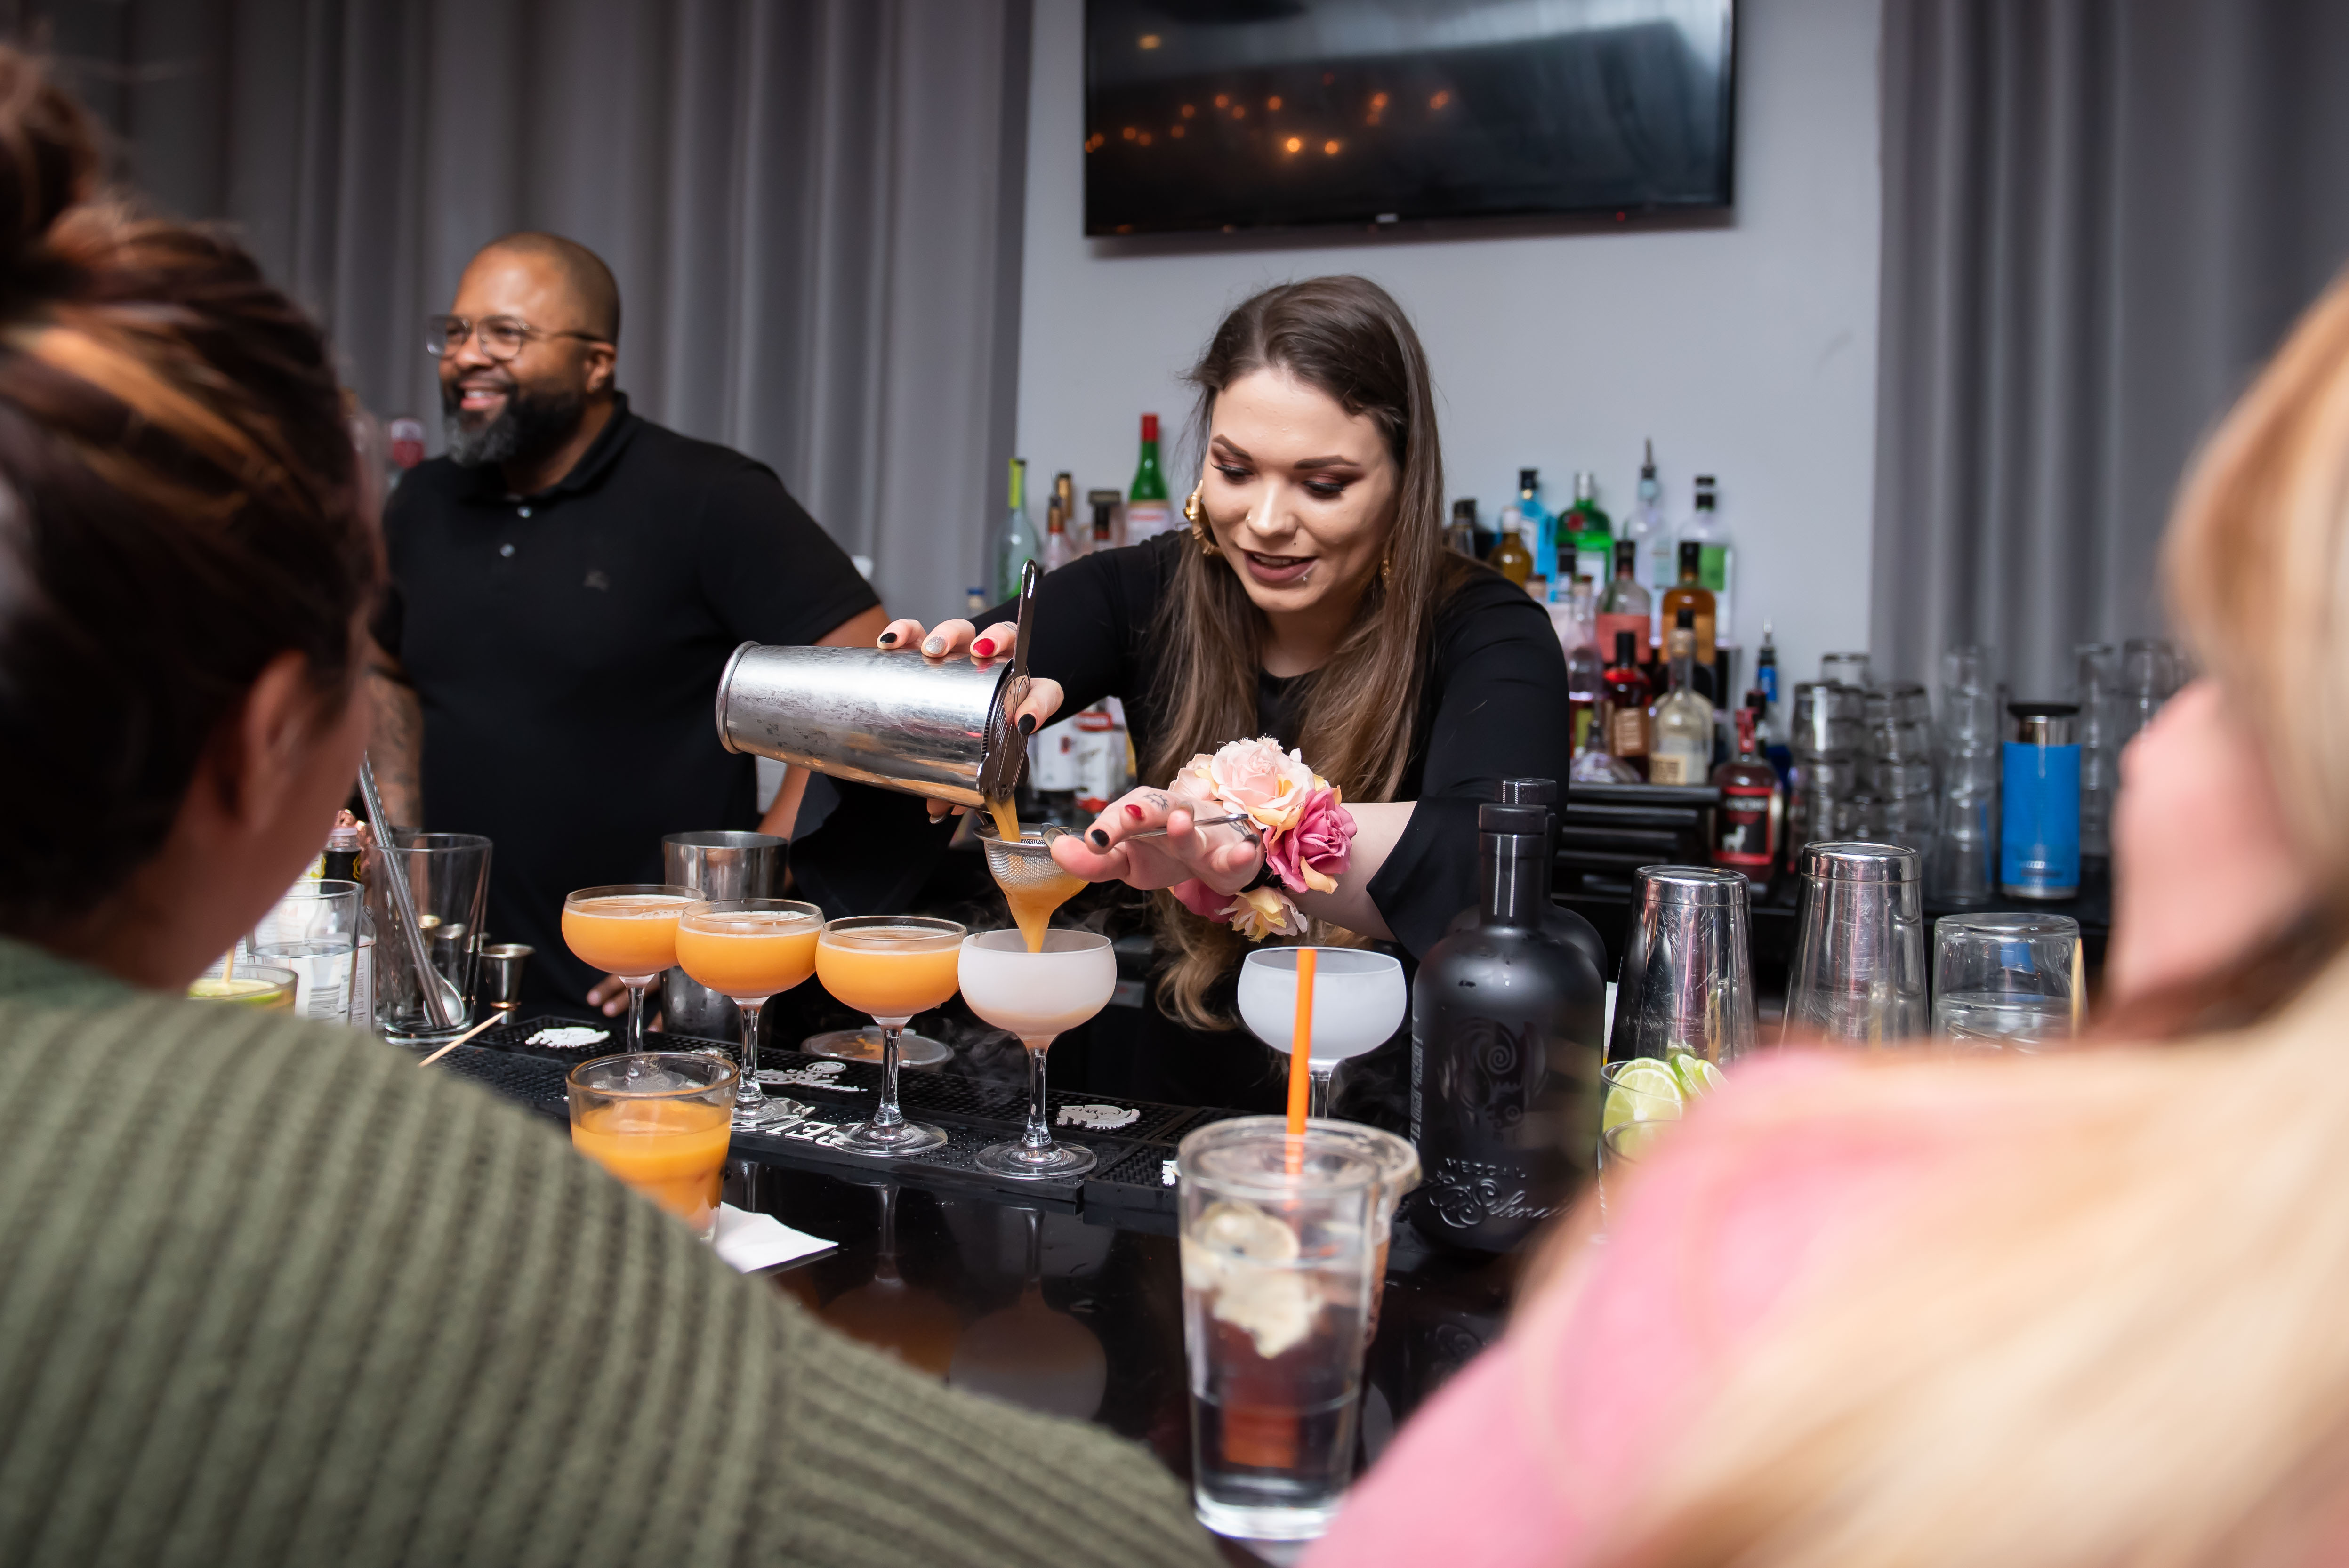 "On Sunday, January 20, 2019, eight professional D.C. bartenders competed for the coveted title of ""Top Dog"" in a craft cocktail competition at Capo Deli and Speakeasy to benefit The Humane Rescue Alliance.{ } The contestants (Ethan Fellers, Kyle Fuller, Marcus McPhail, Mai Templeton, Richard Torres, Keith Vinlaun, Jazmyne Wade and Sonya Znati) were judged by celeb judges, Chef Amy Brandwein, Chef Kwame Onwuachi, Himtsu co-owner Carlie Steiner and spirits writer M. Carrie Allan. The competition? Who can craft the best cocktail using Blue Henry syrups, cotton candy butters, dried fruit garnishes or Silencio mezcal in a tournament-style round of matchups. Service Bar's Mai Templeton emerged the ""Top Dog"" winner, while Richard Torres (Silver New American Brasserie) took home the People's Choice Award. (Image: Joy Asico / DC Refined)"